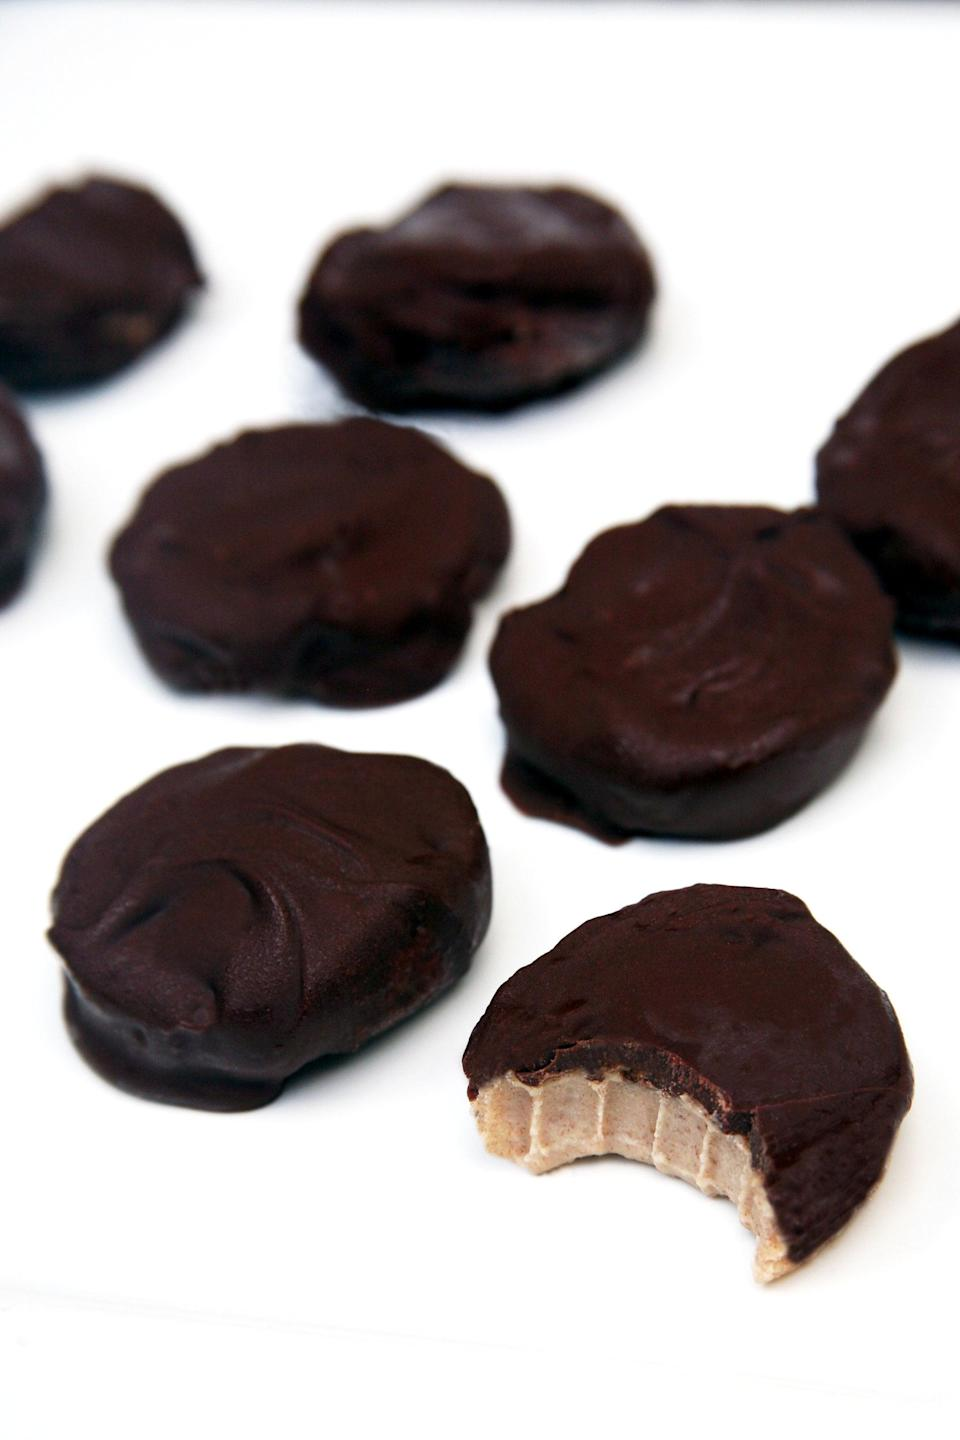 """<p>If you've never made homemade chocolates in your life, this recipe is a perfect one to start with. Each Peppermint Pattie is the perfect marriage between chocolate and mint, and these taste better because of the creamy, melt-in-your-mouth cashew filling.</p> <p><strong>Get the recipe:</strong> <a href=""""https://www.popsugar.com/fitness/Vegan-Peppermint-Patties-42588113"""" class=""""link rapid-noclick-resp"""" rel=""""nofollow noopener"""" target=""""_blank"""" data-ylk=""""slk:vegan Peppermint Patties"""">vegan Peppermint Patties</a></p>"""